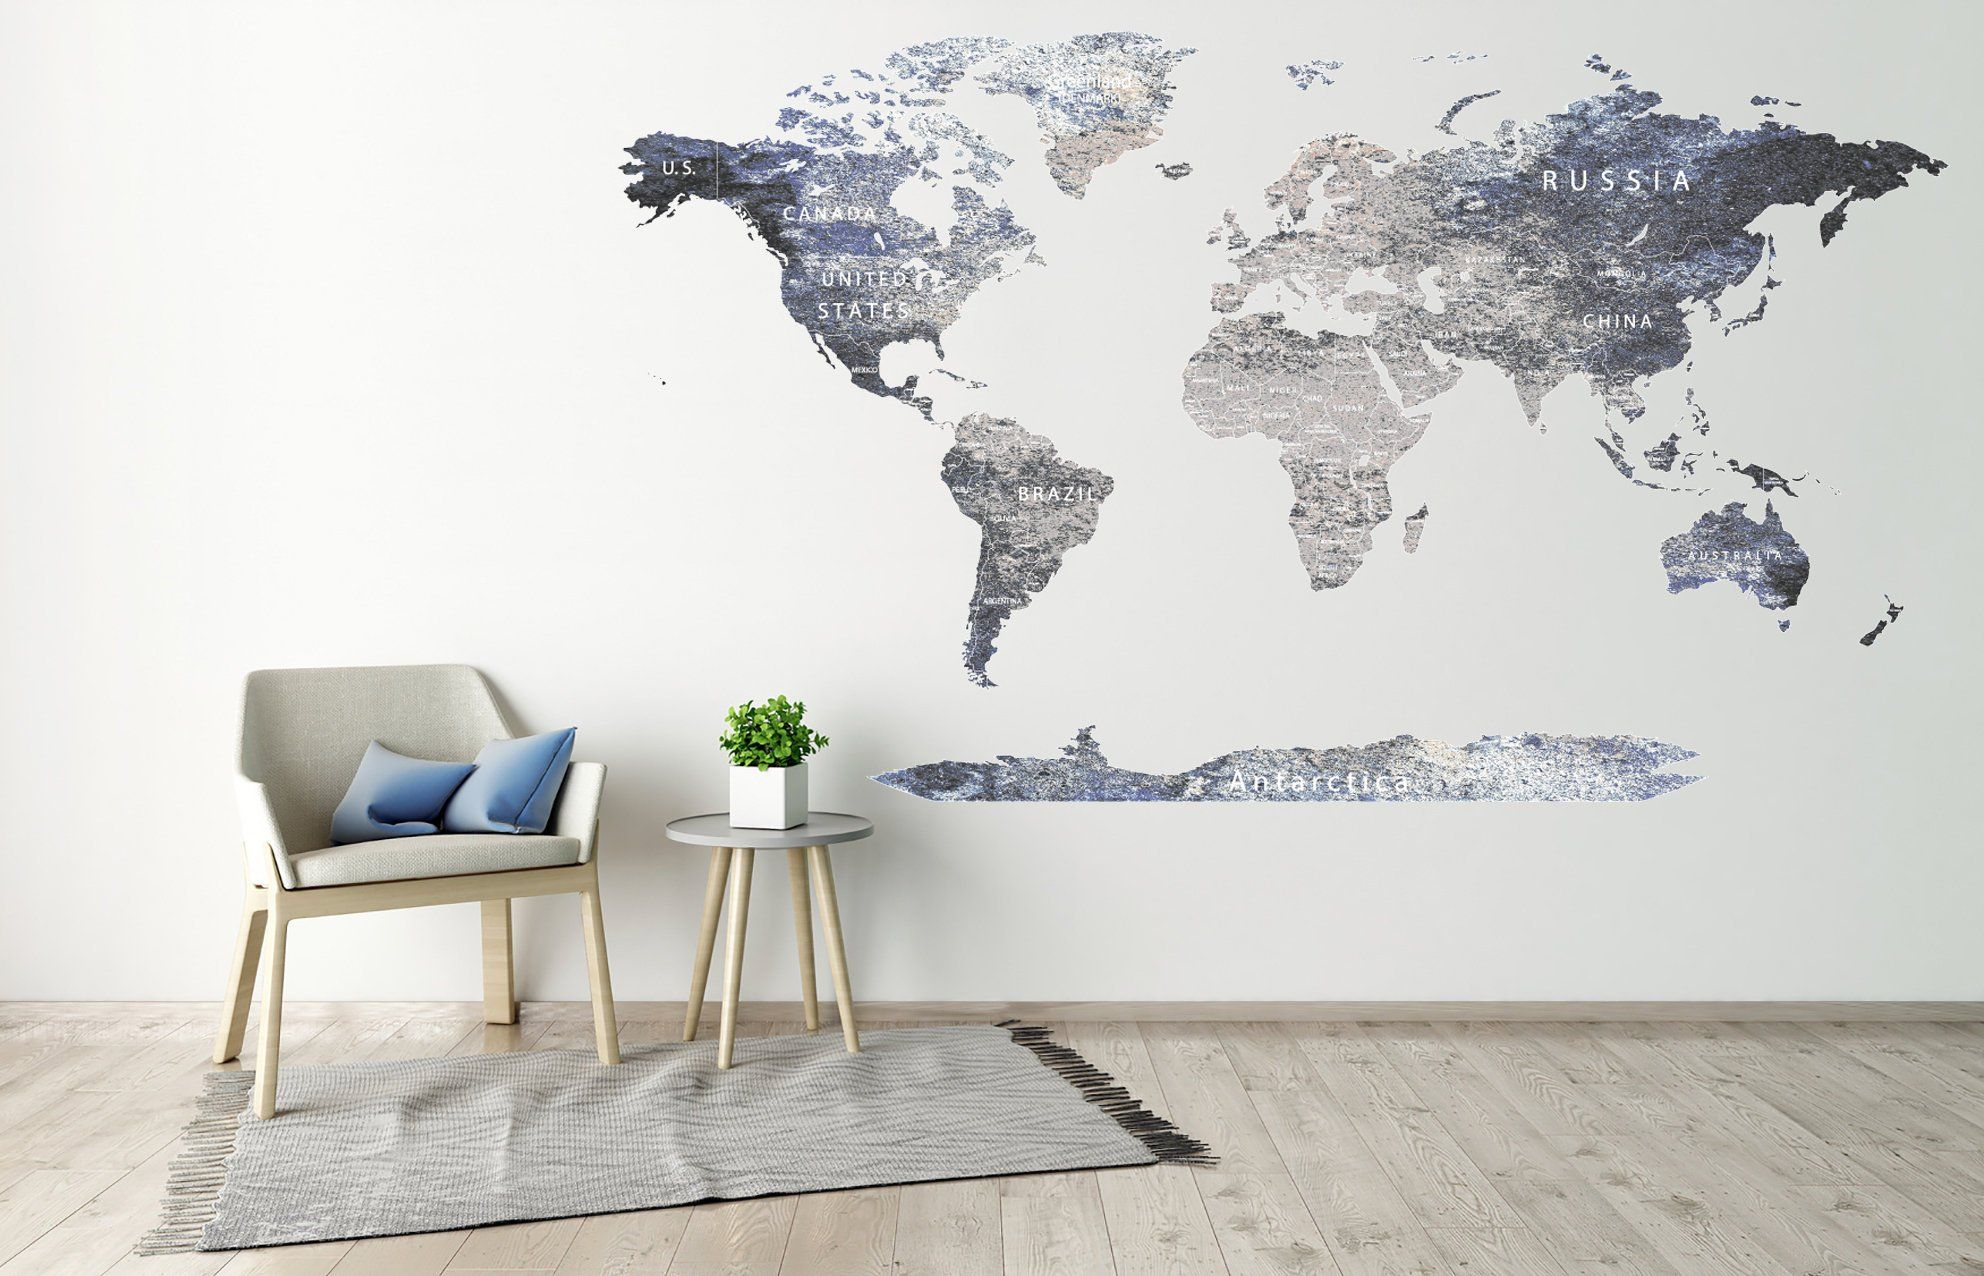 Vinyl Printed Сolorful titles Gray World map Poster Detailed Map Decal Print Map with countries Push pin World map decal Map of world decor #worldmapmural